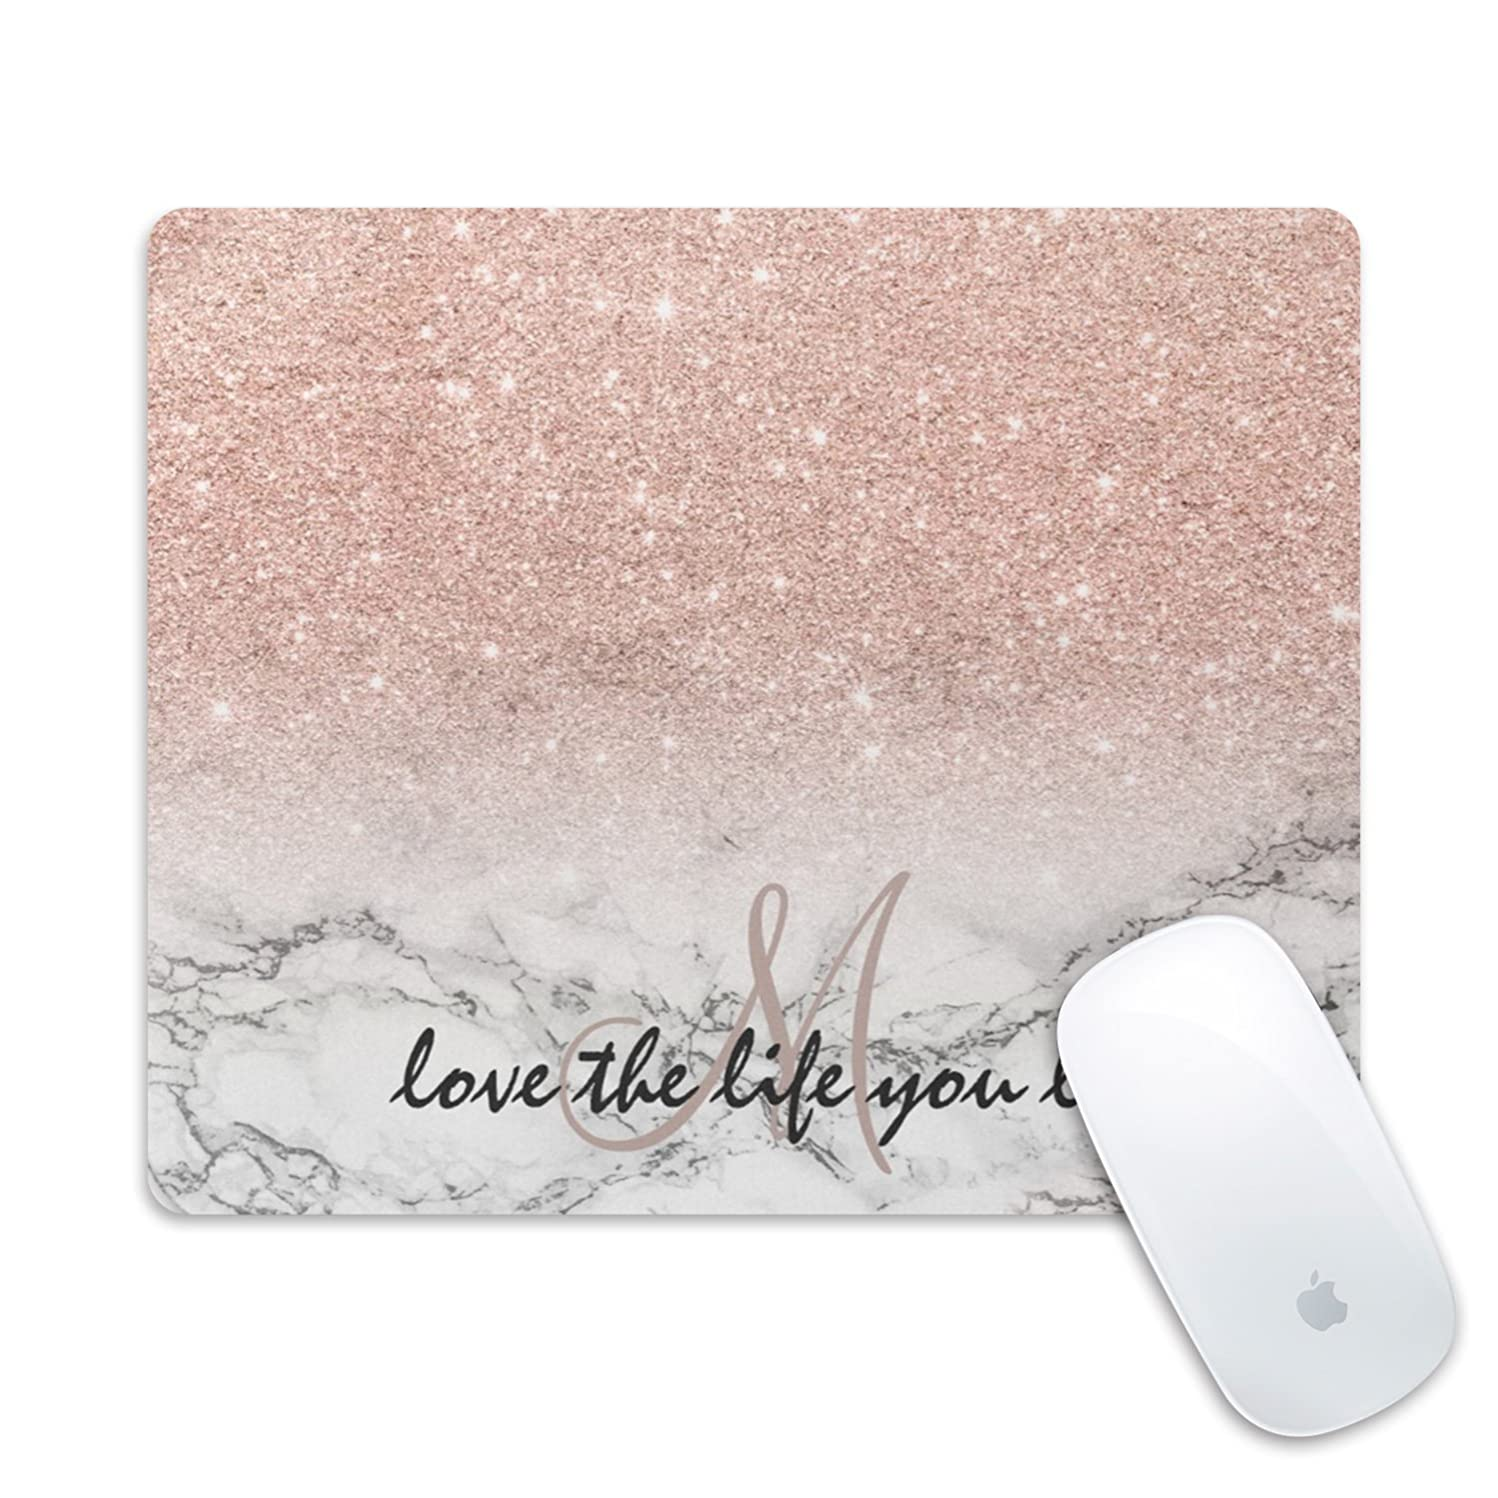 Professional Gaming Mouse Pad, Personalized Durable Non Slip Mouse Mat, Computer Desk Stationery Accessories Mouse Pads for Gift - Gold Rose